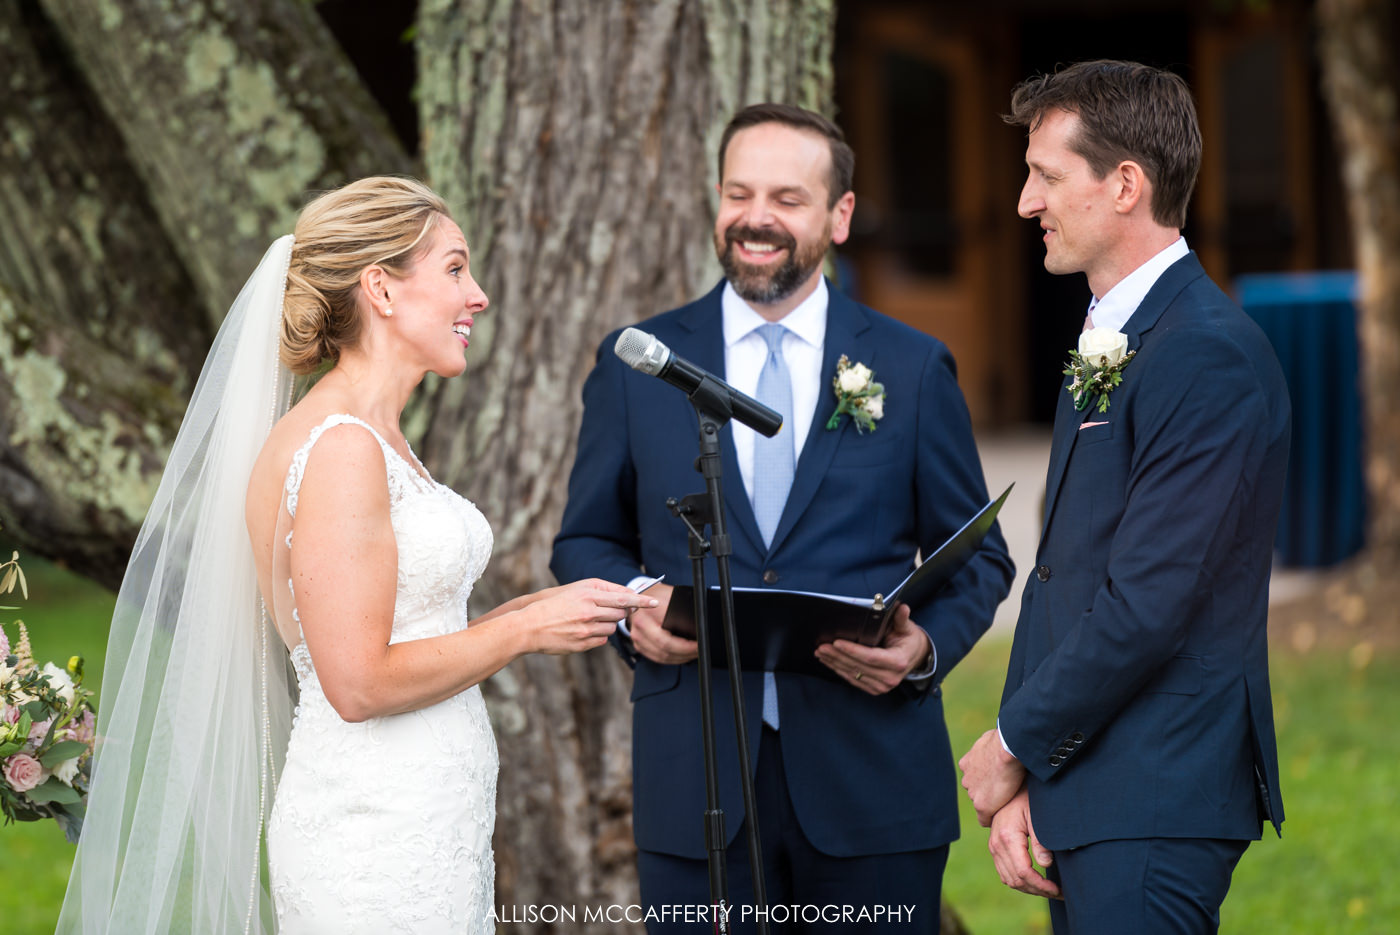 Outdoor ceremony at Rose Bank Winery